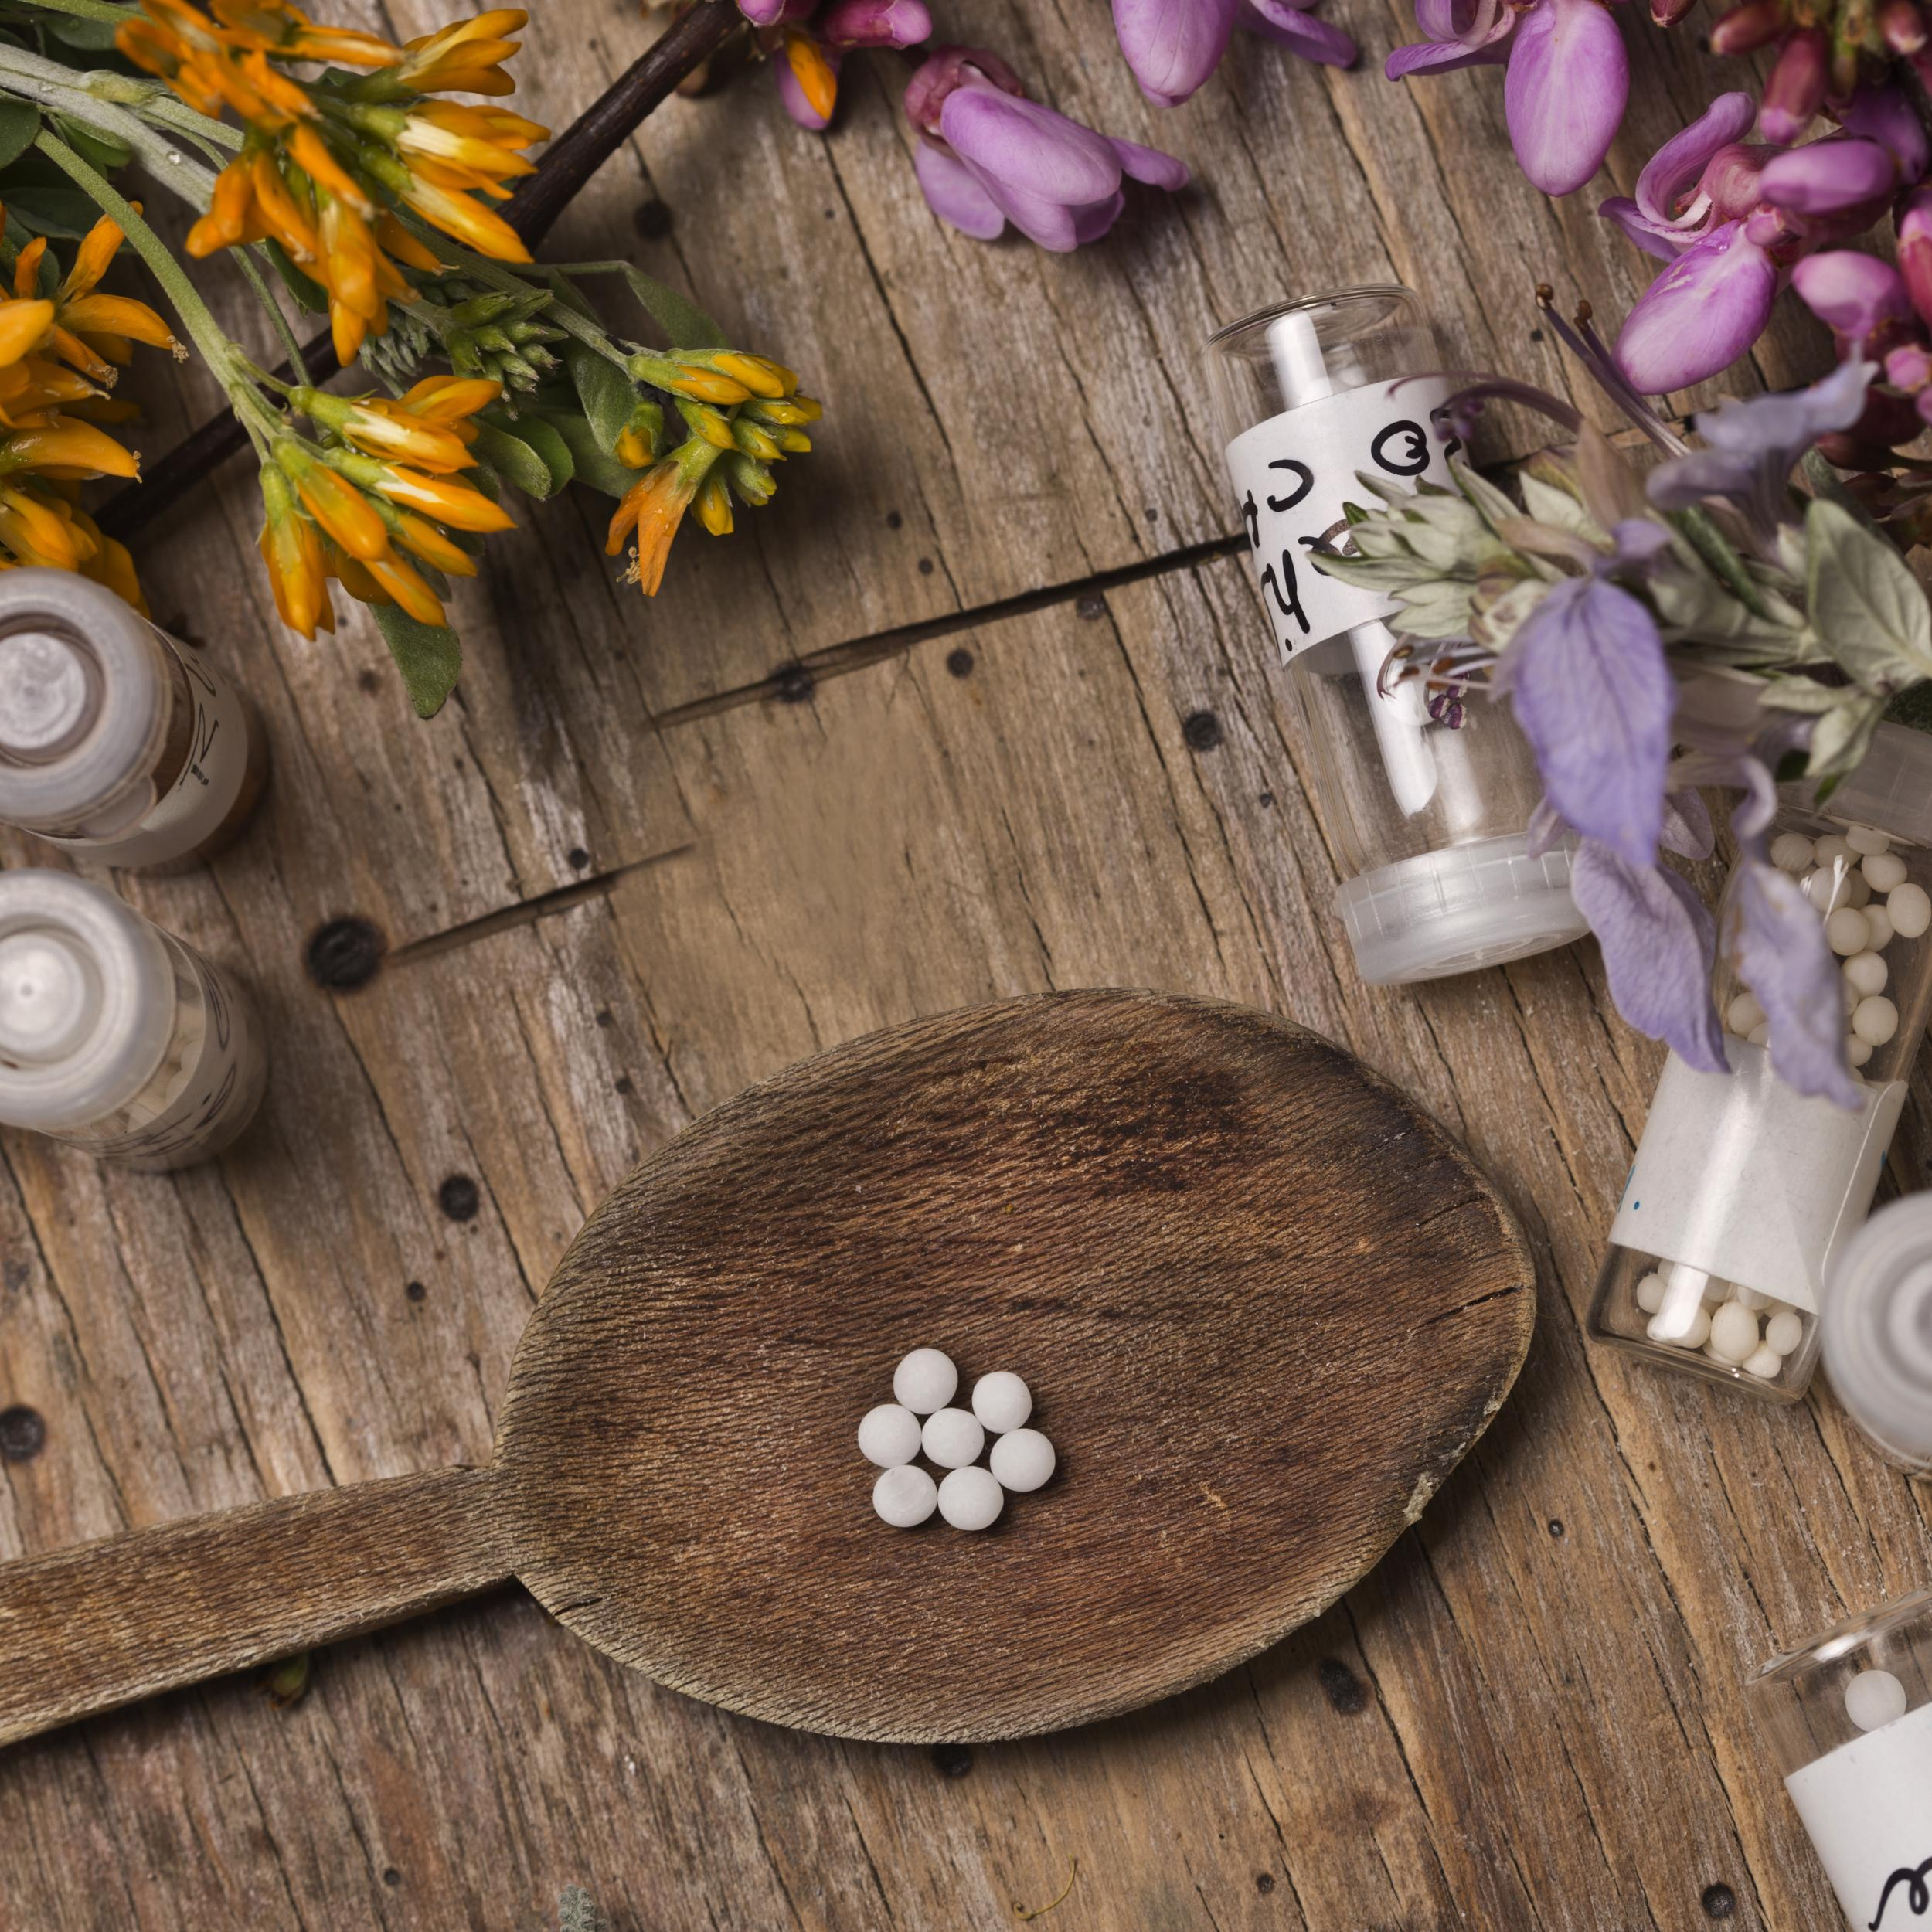 FDA Reevaluates Homeopathy's Safety And Efficacy: Should The